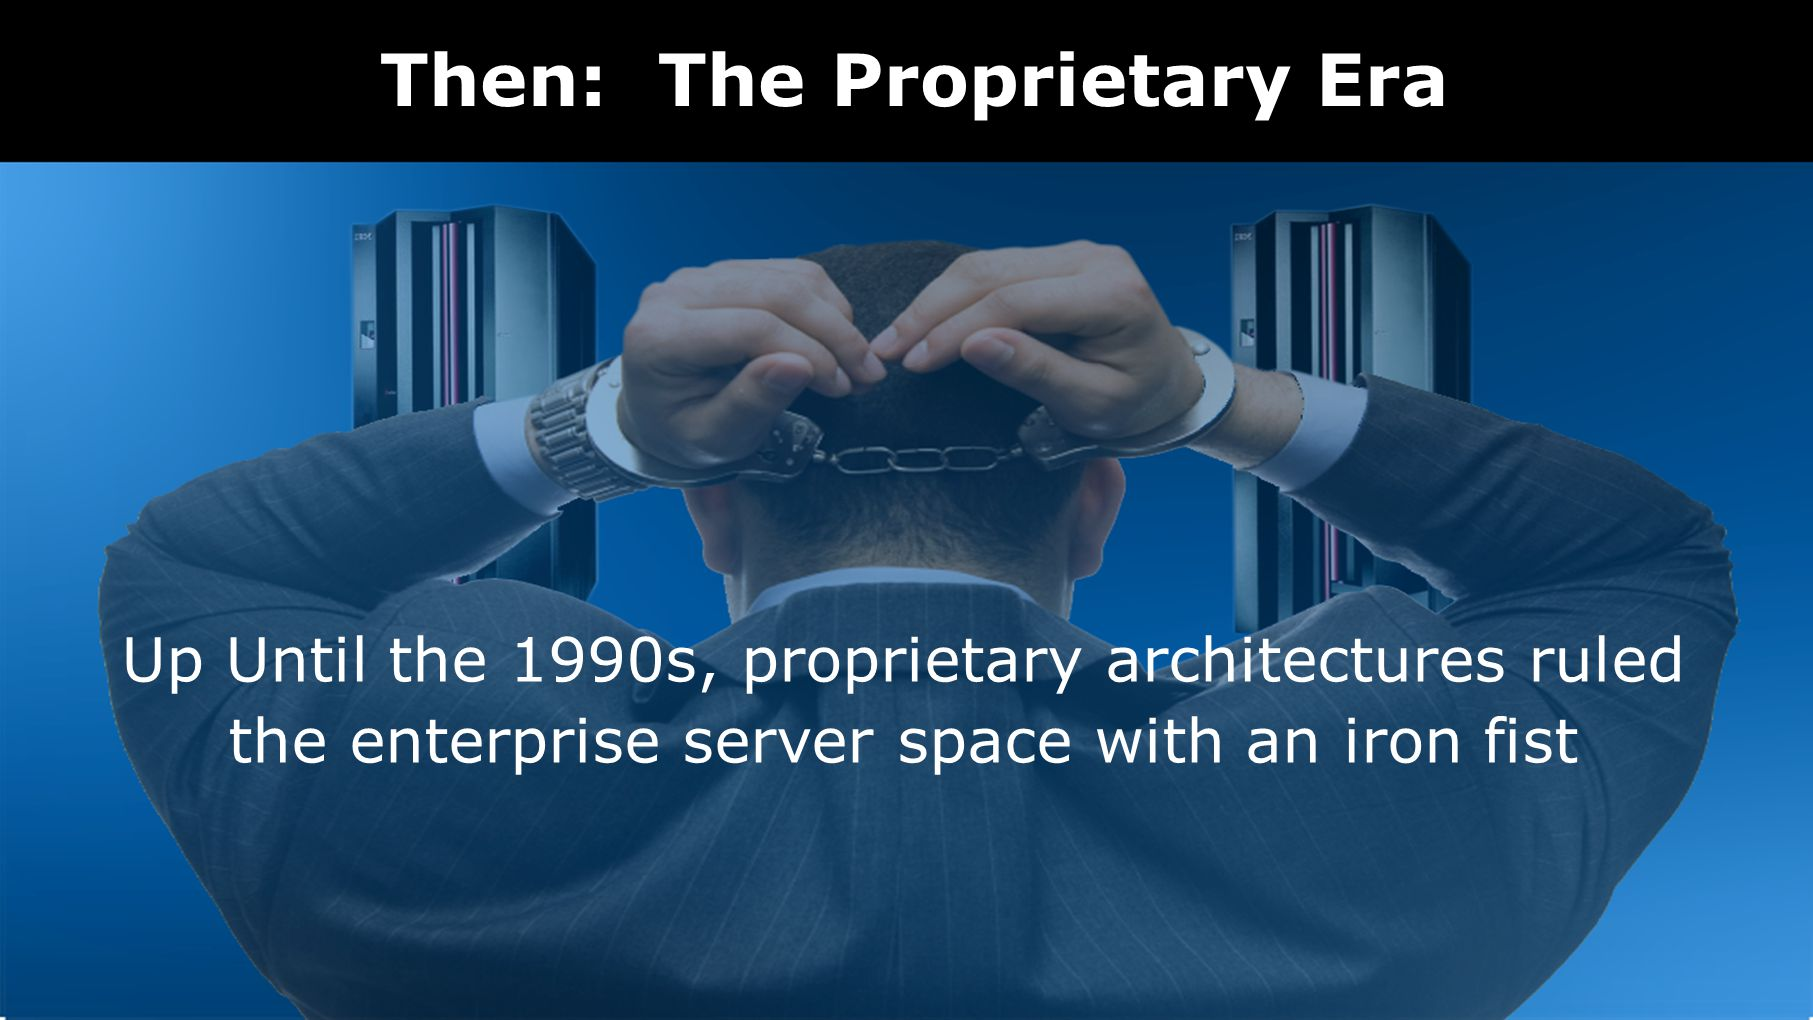 Then: The Proprietary Era Up Until the 1990s, proprietary architectures ruled the enterprise server space with an iron fist